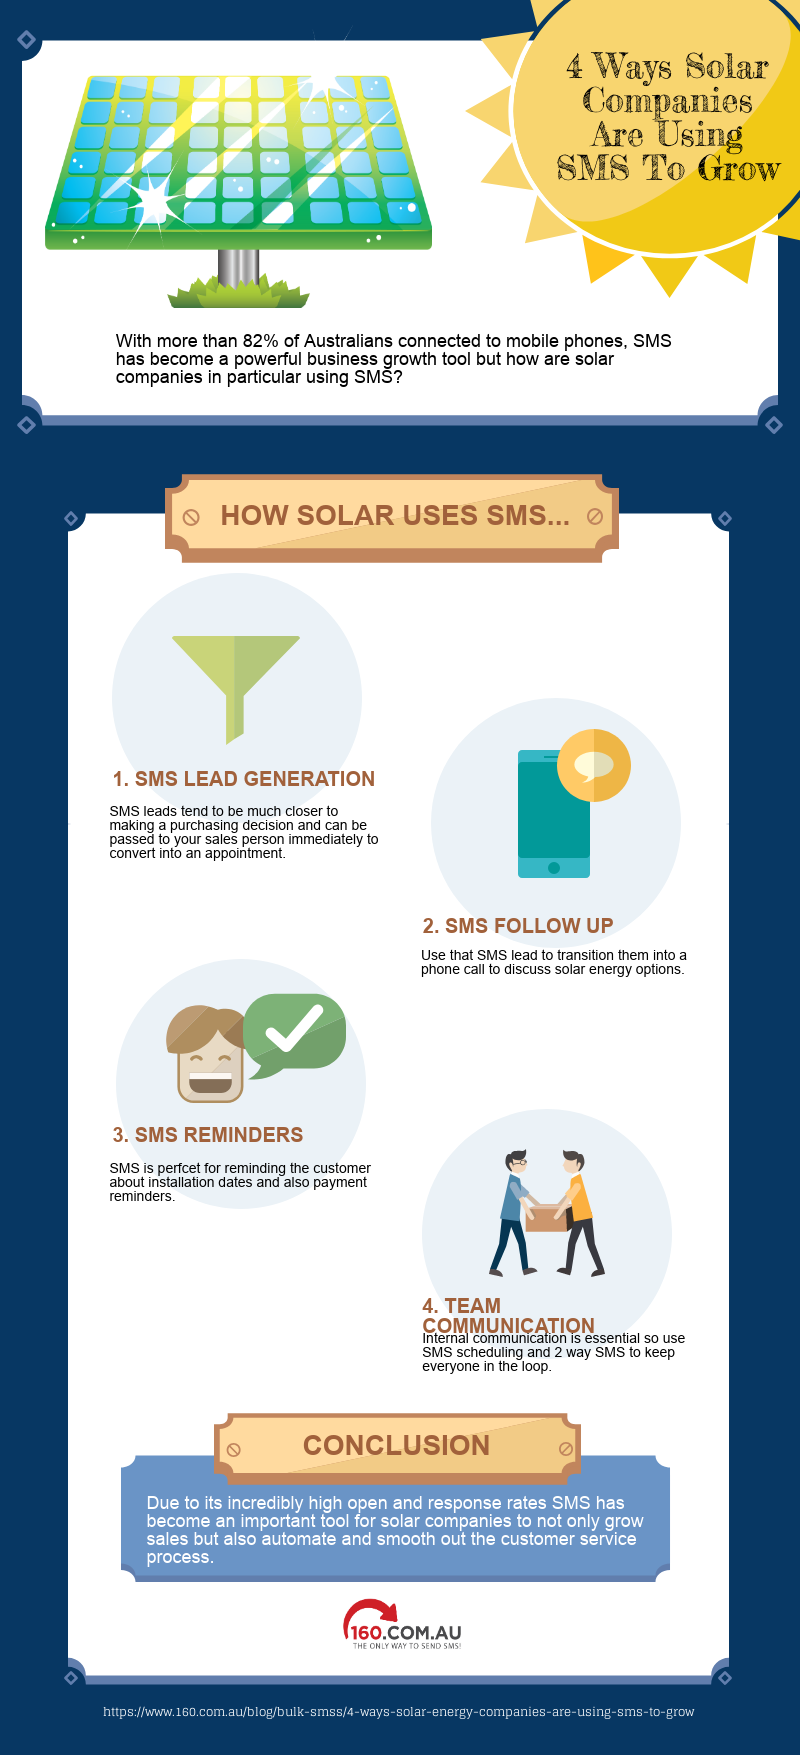 4 Ways Solar Energy Companies Are Using SMS To Grow